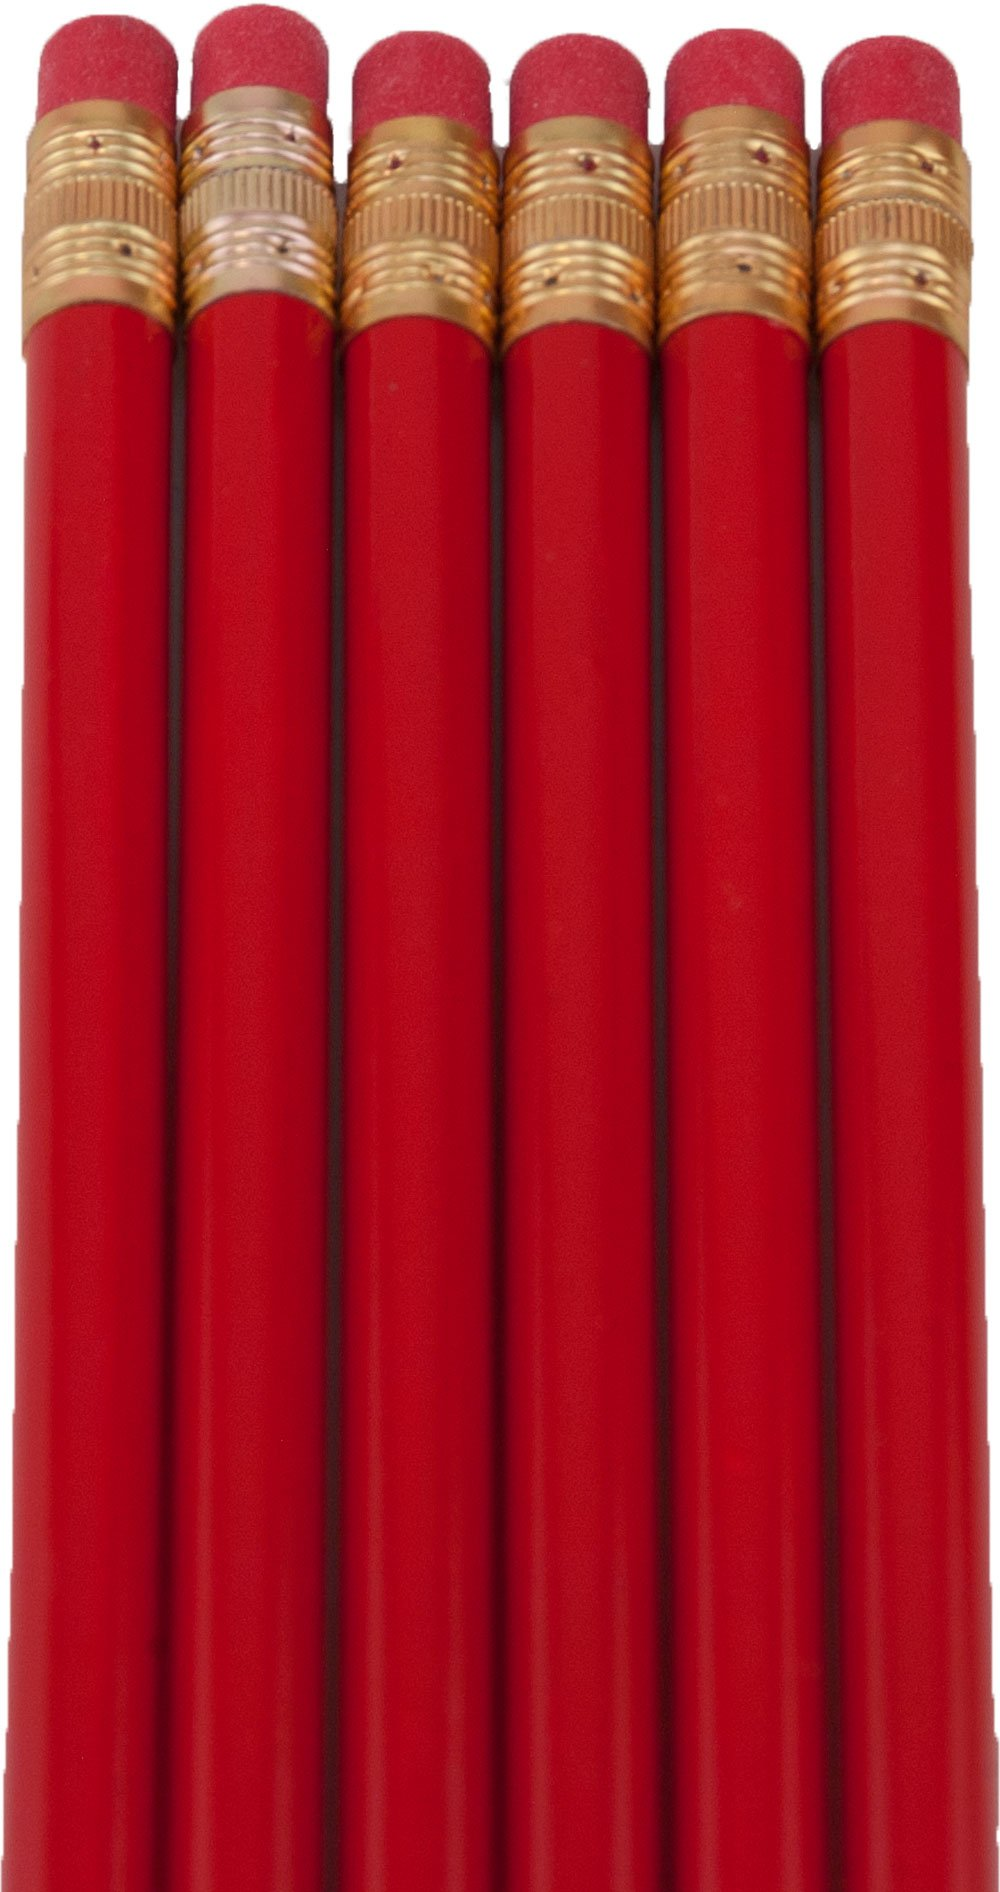 Round Pencils (Full Size Round Pencil with #2 Lead Available in a Variety of Colors) (Tested Non Toxic) (Latex Free Eraser) (Bulk Box of 144) (Classroom Pencils) (Red) by Alpen Glow Products (Image #2)